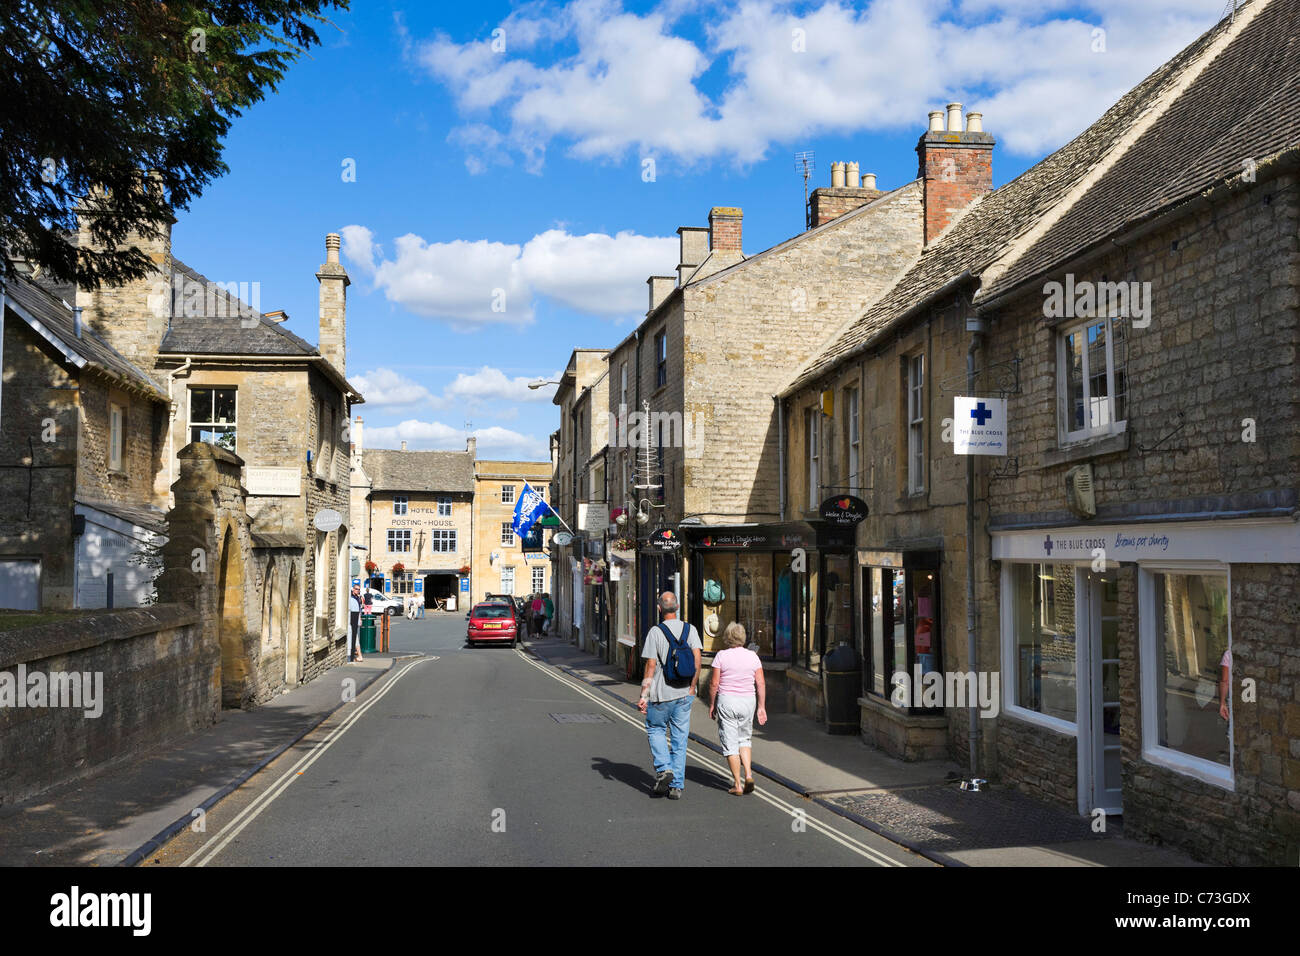 Church Street in the centre of the Cotswold town of Stow-on-the-Wold, Gloucestershire, England, UK - Stock Image